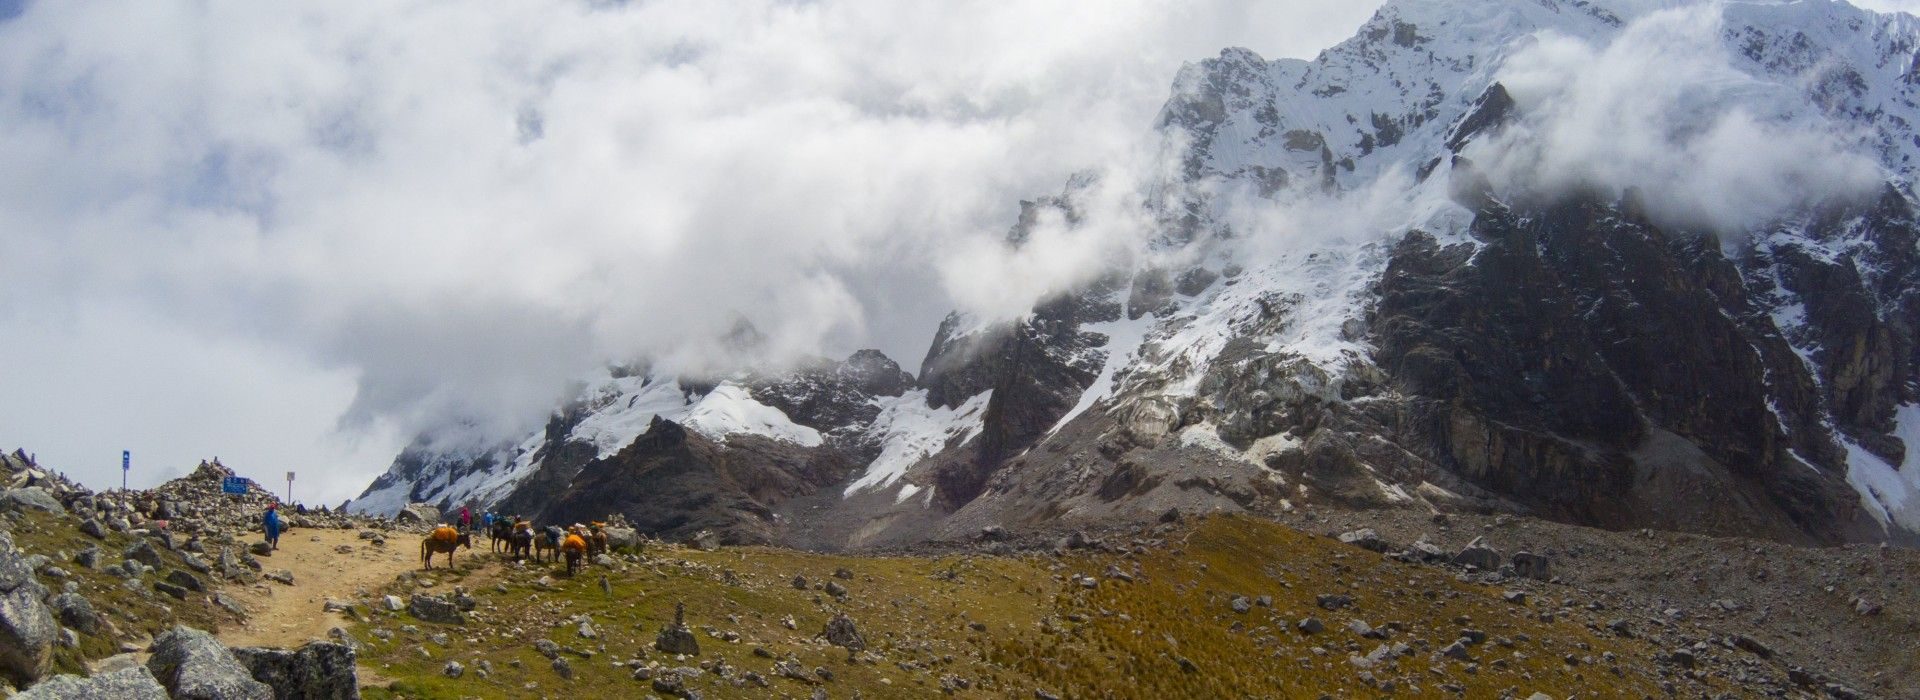 Salkantay trek - prices, itineraries and best time to visit